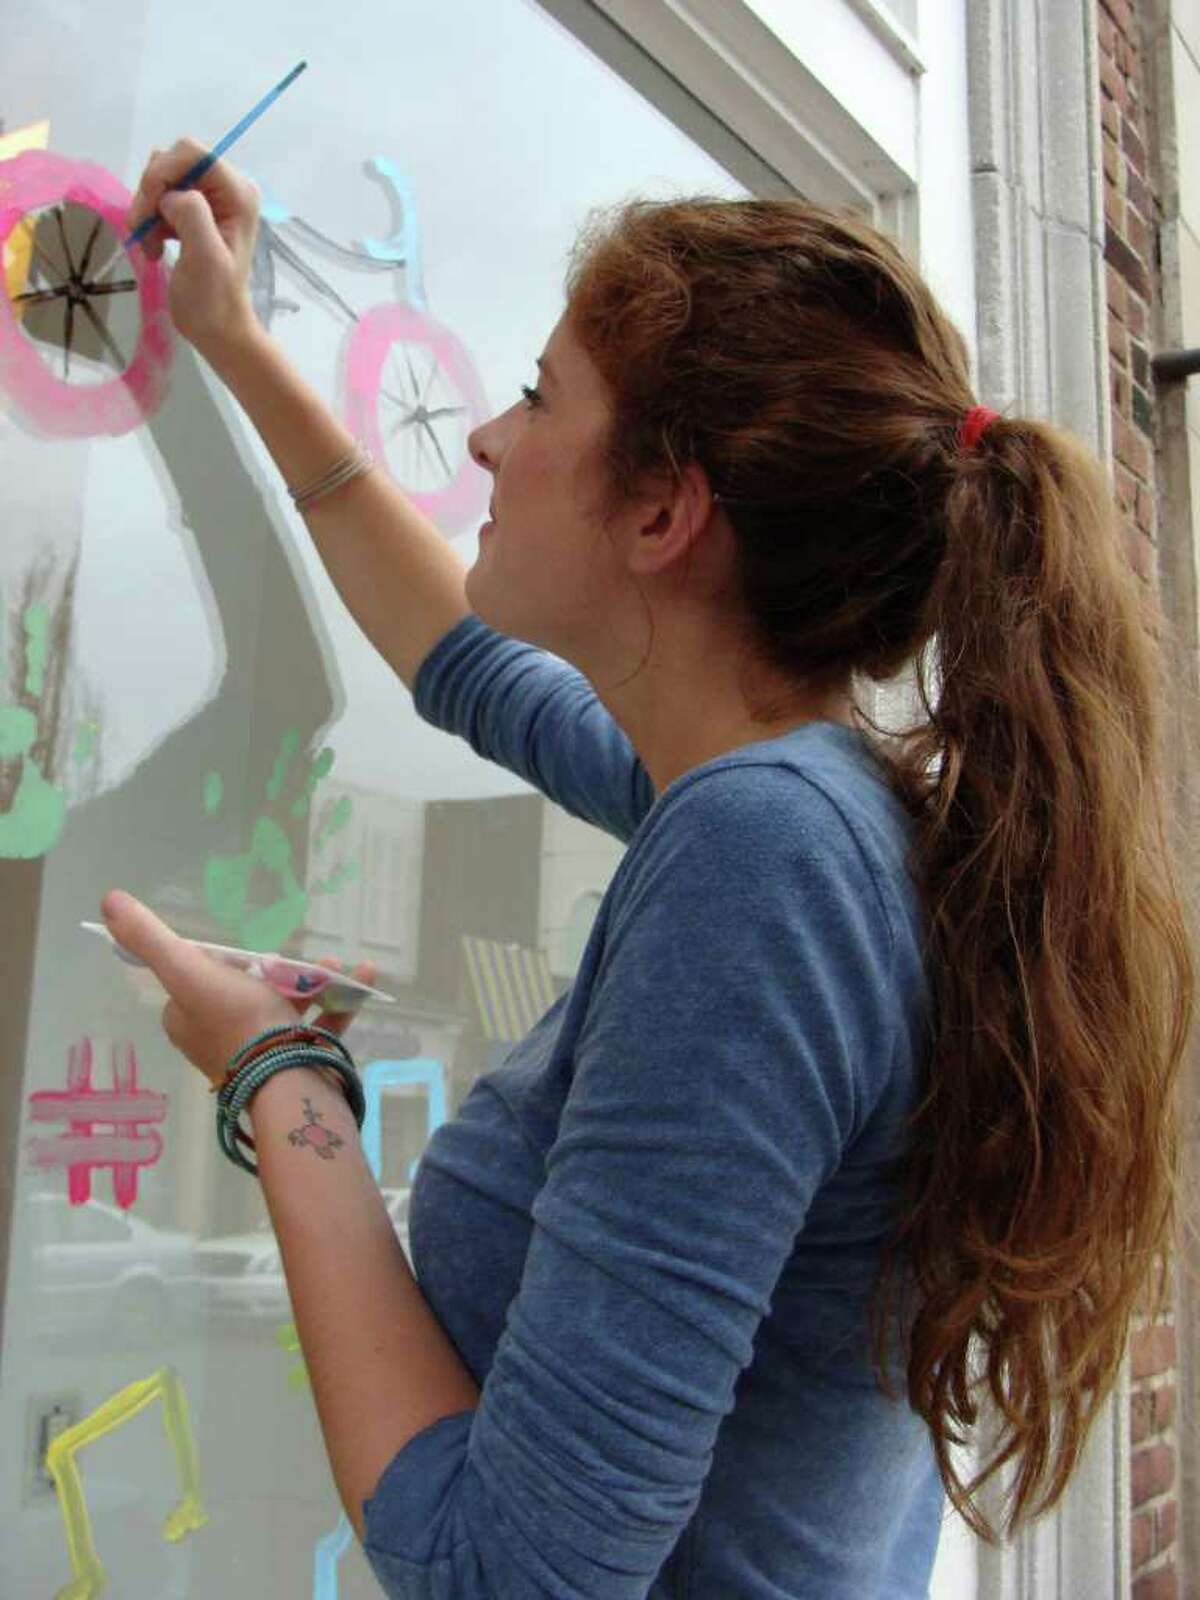 Skye Davis, 17, of Westport, works on a bicycle, part of a larger painting that she and friend Holly Stewart, 17, of Westport, created together for the Save the Children window art competition on the storefront of BCBG MaxAzria.